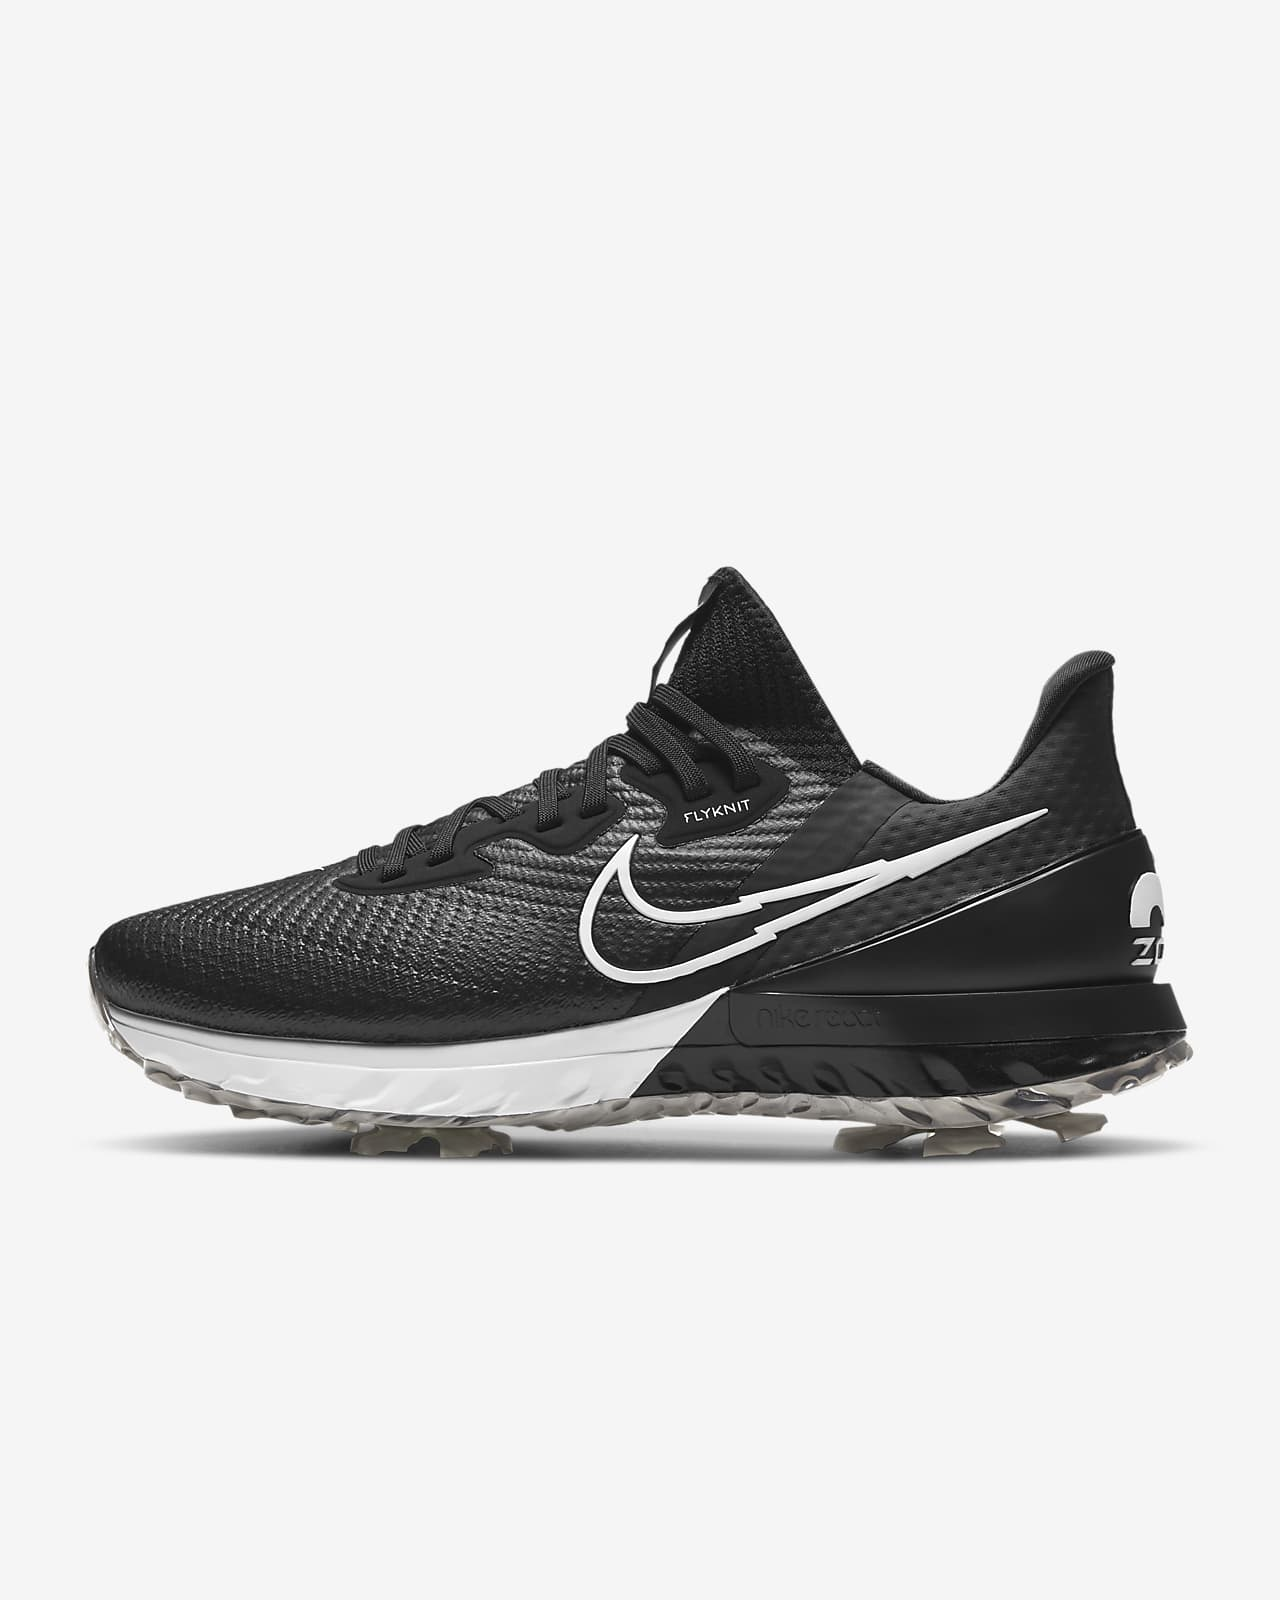 Chaussure de golf Nike Air Zoom Infinity Tour